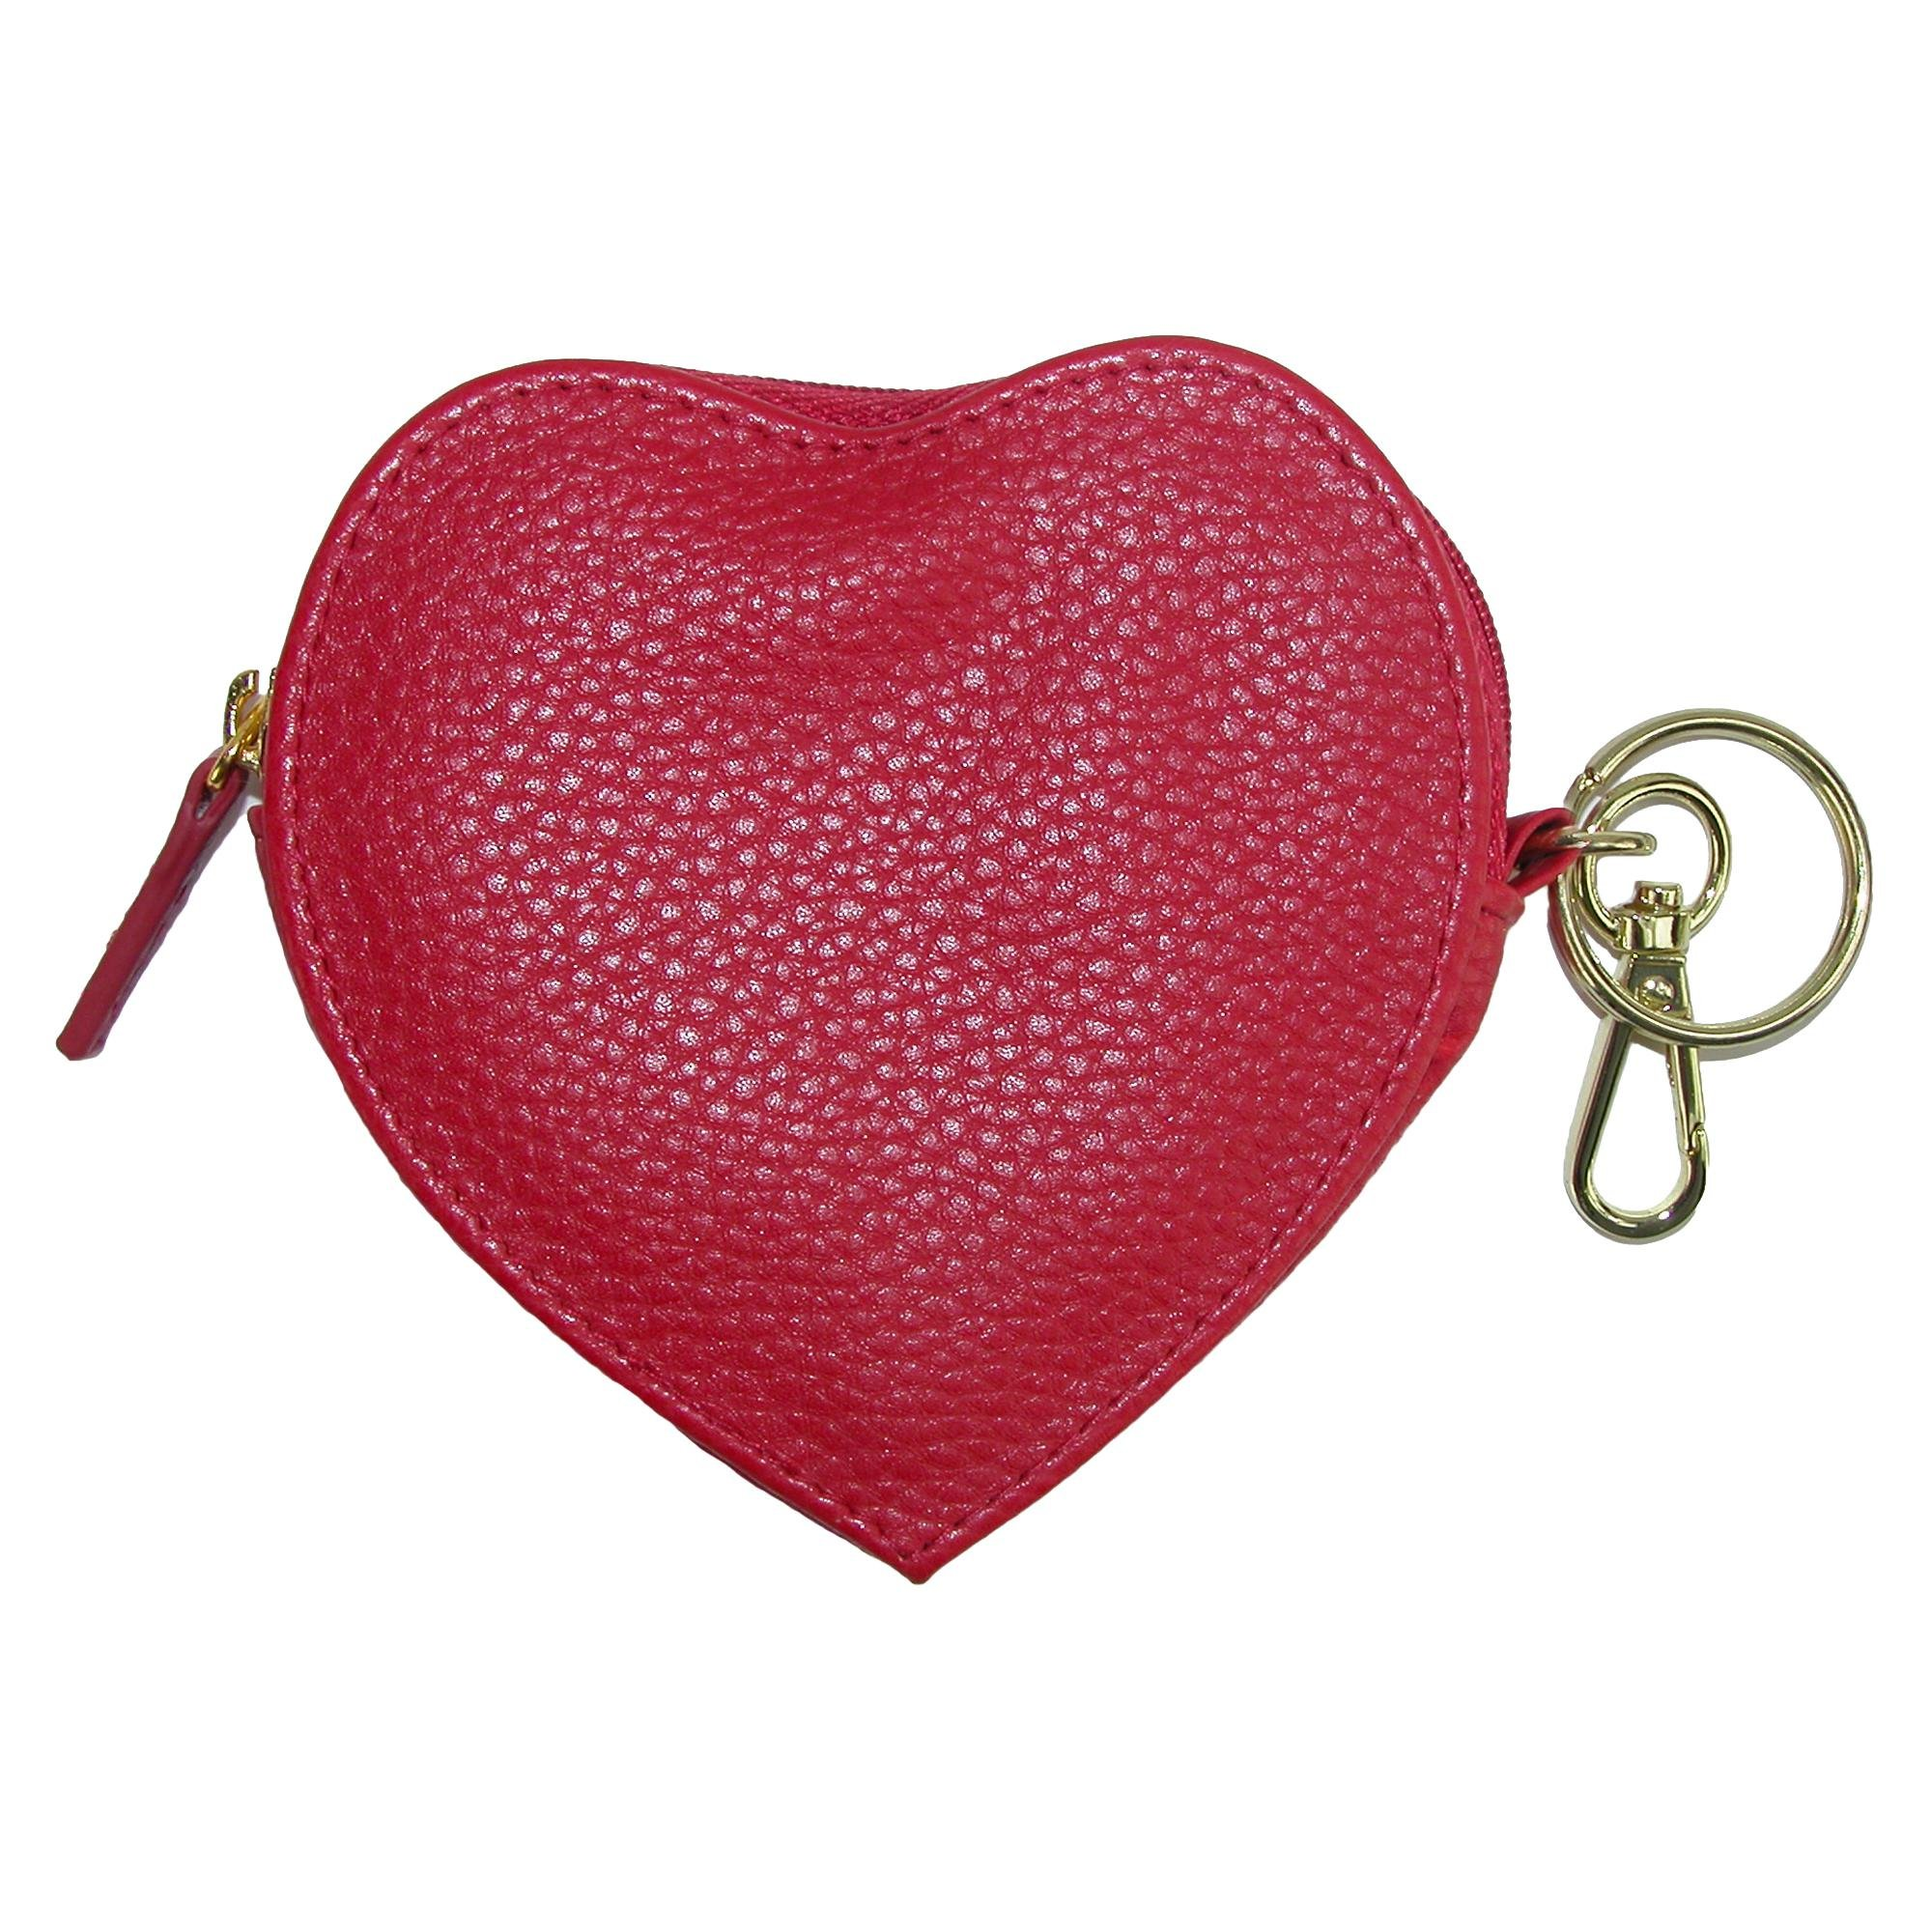 Buxton Heart Shaped Coin Purse Wallet, Red